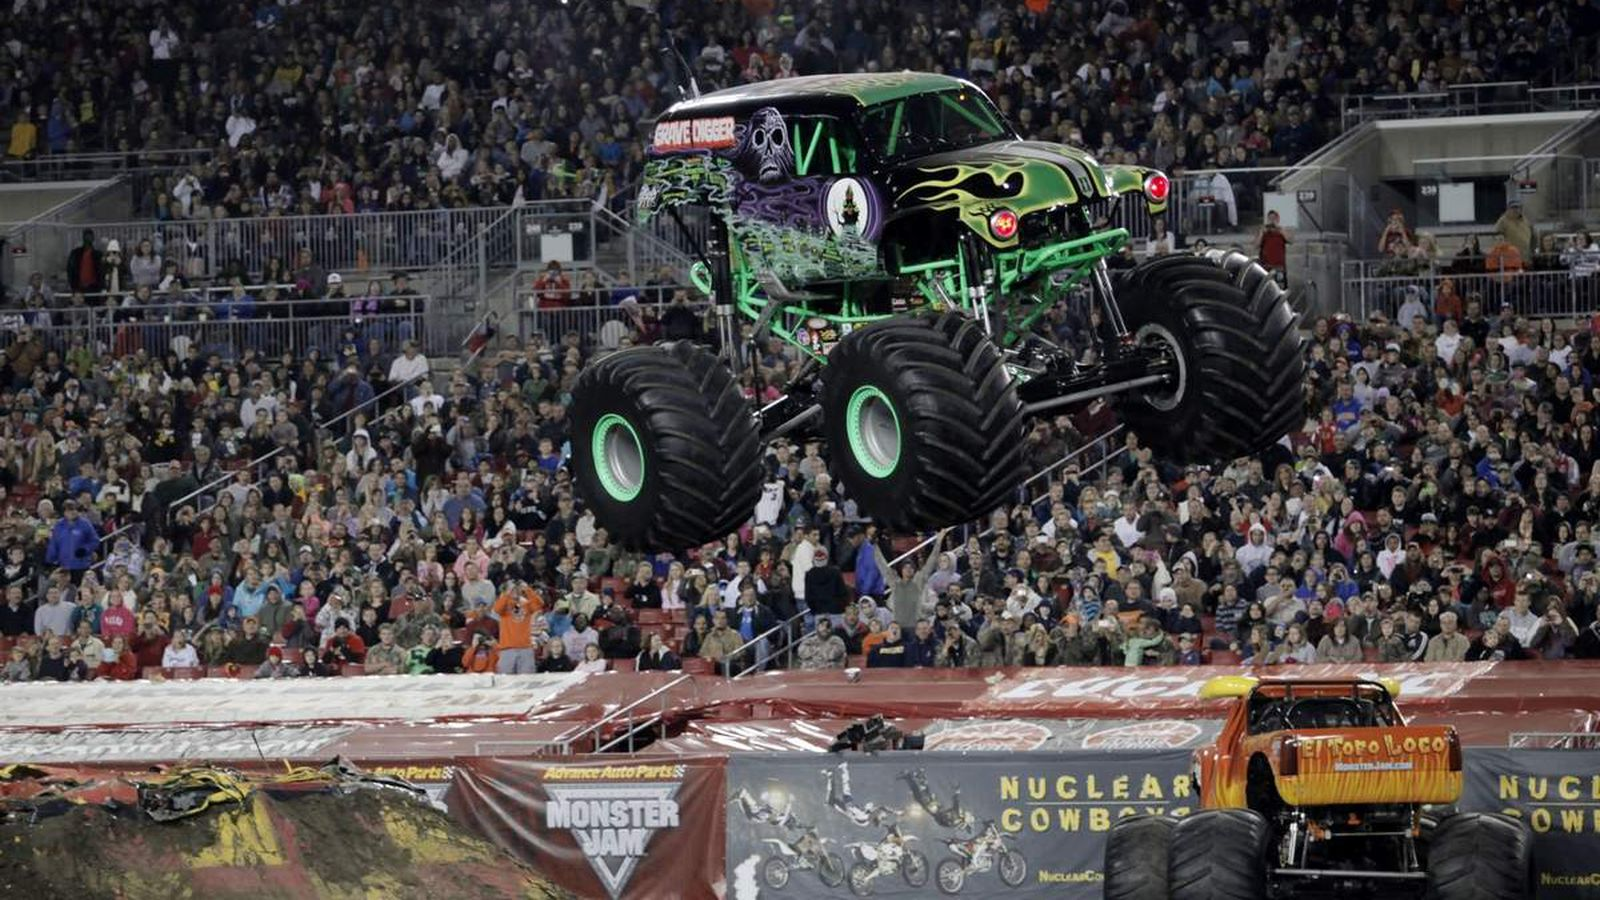 Monster Jam Fun Facts About Monster Trucks And Drivers Coming To Tampa